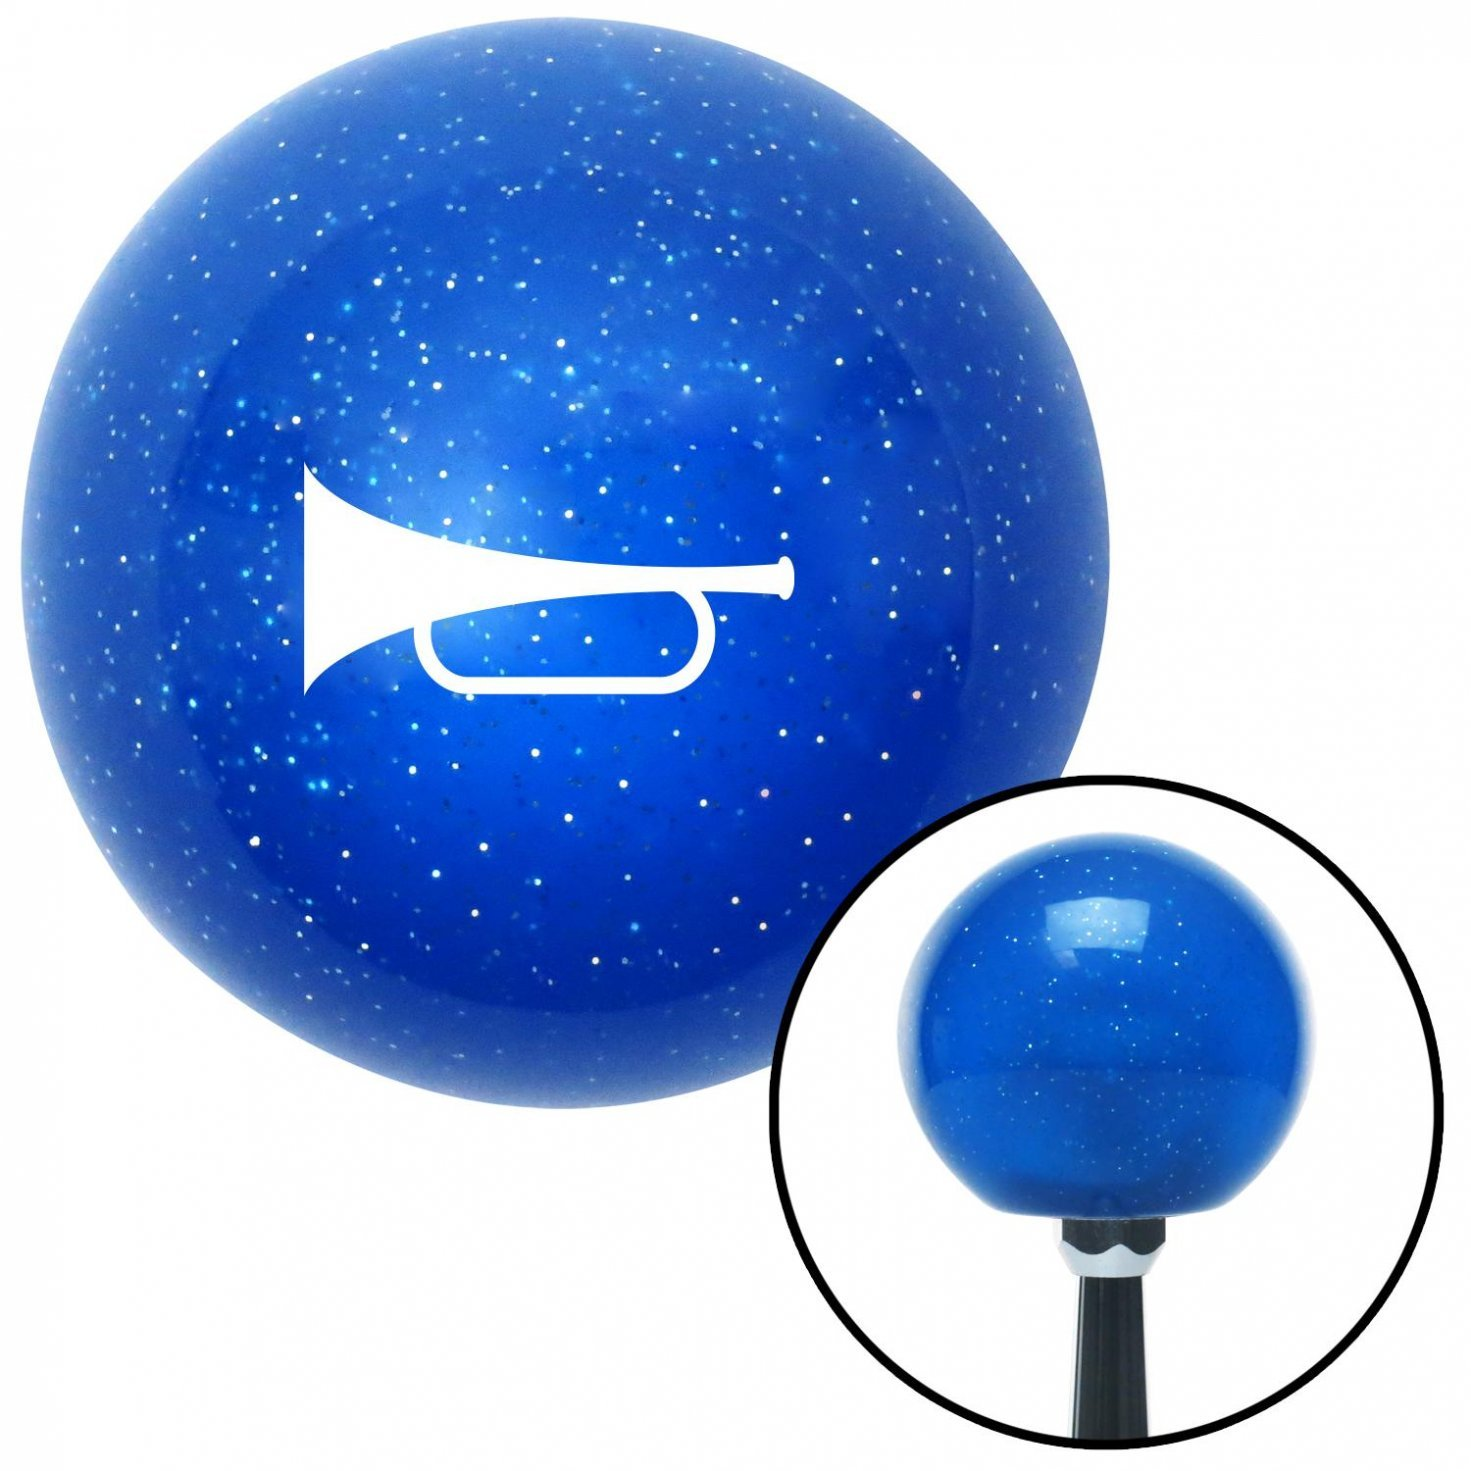 White Horn Trumpet American Shifter 21716 Blue Metal Flake Shift Knob with 16mm x 1.5 Insert